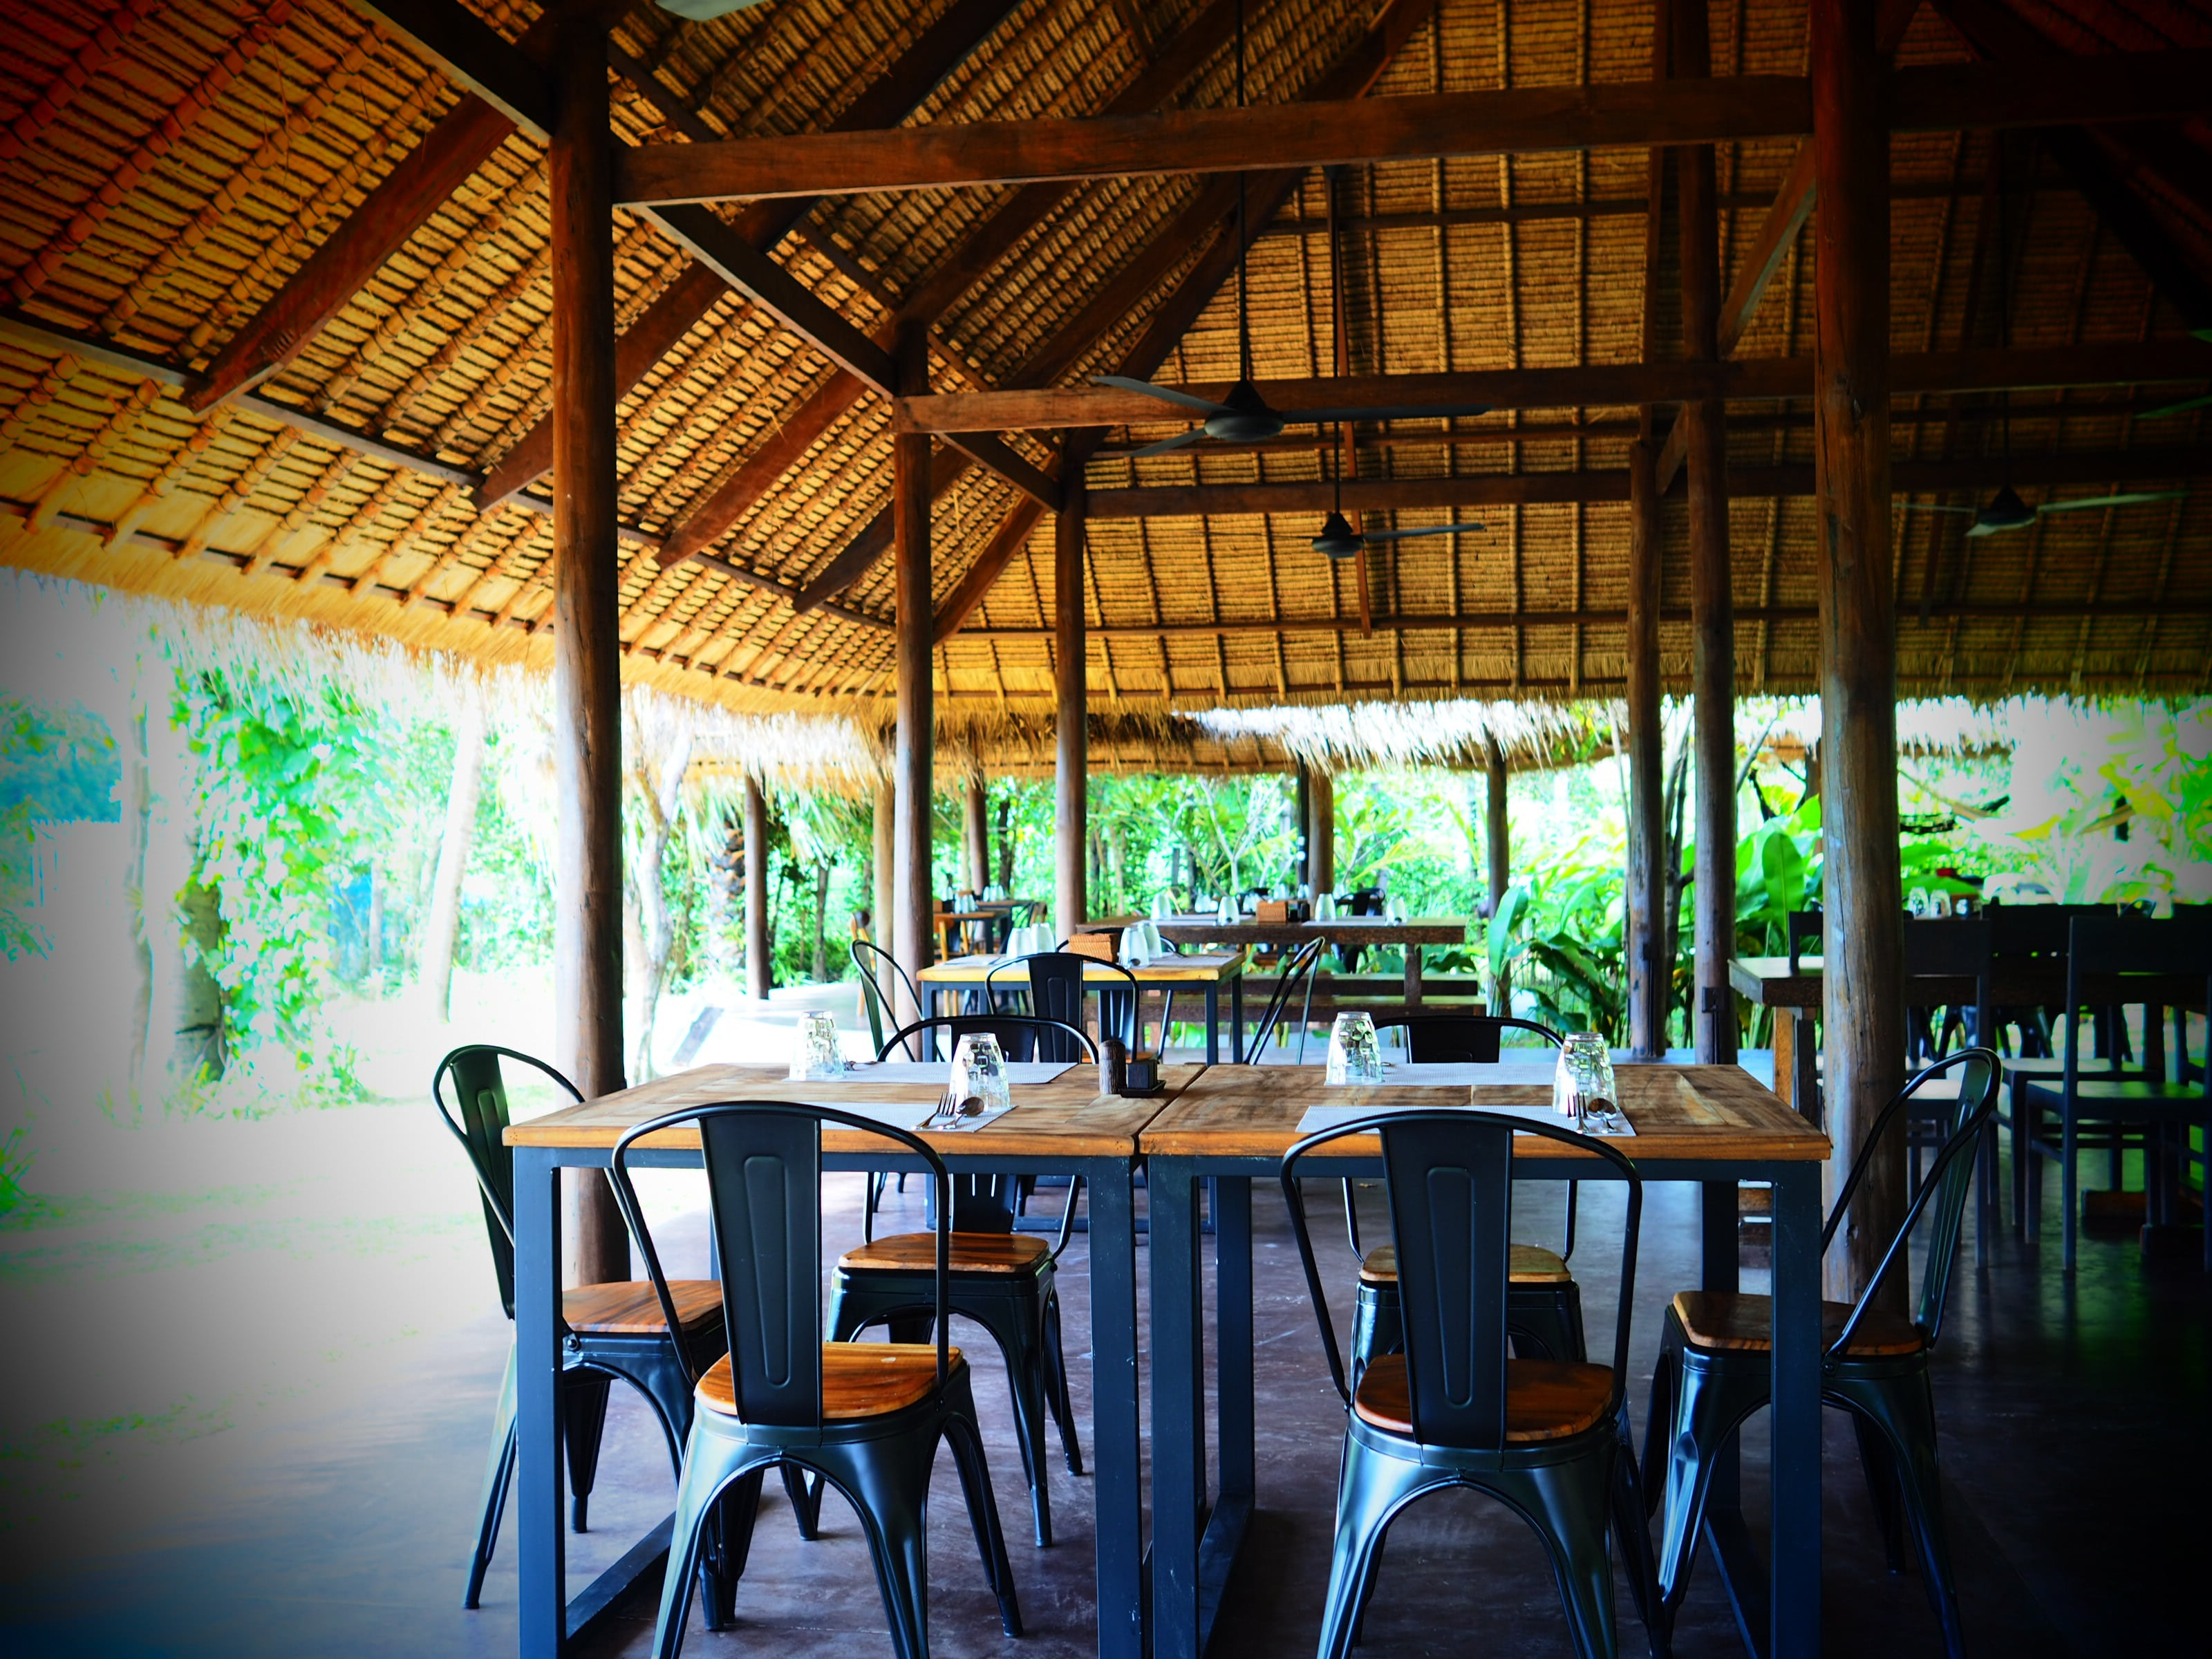 Devatas Restaurant only minutes from Banteay Srey Temple